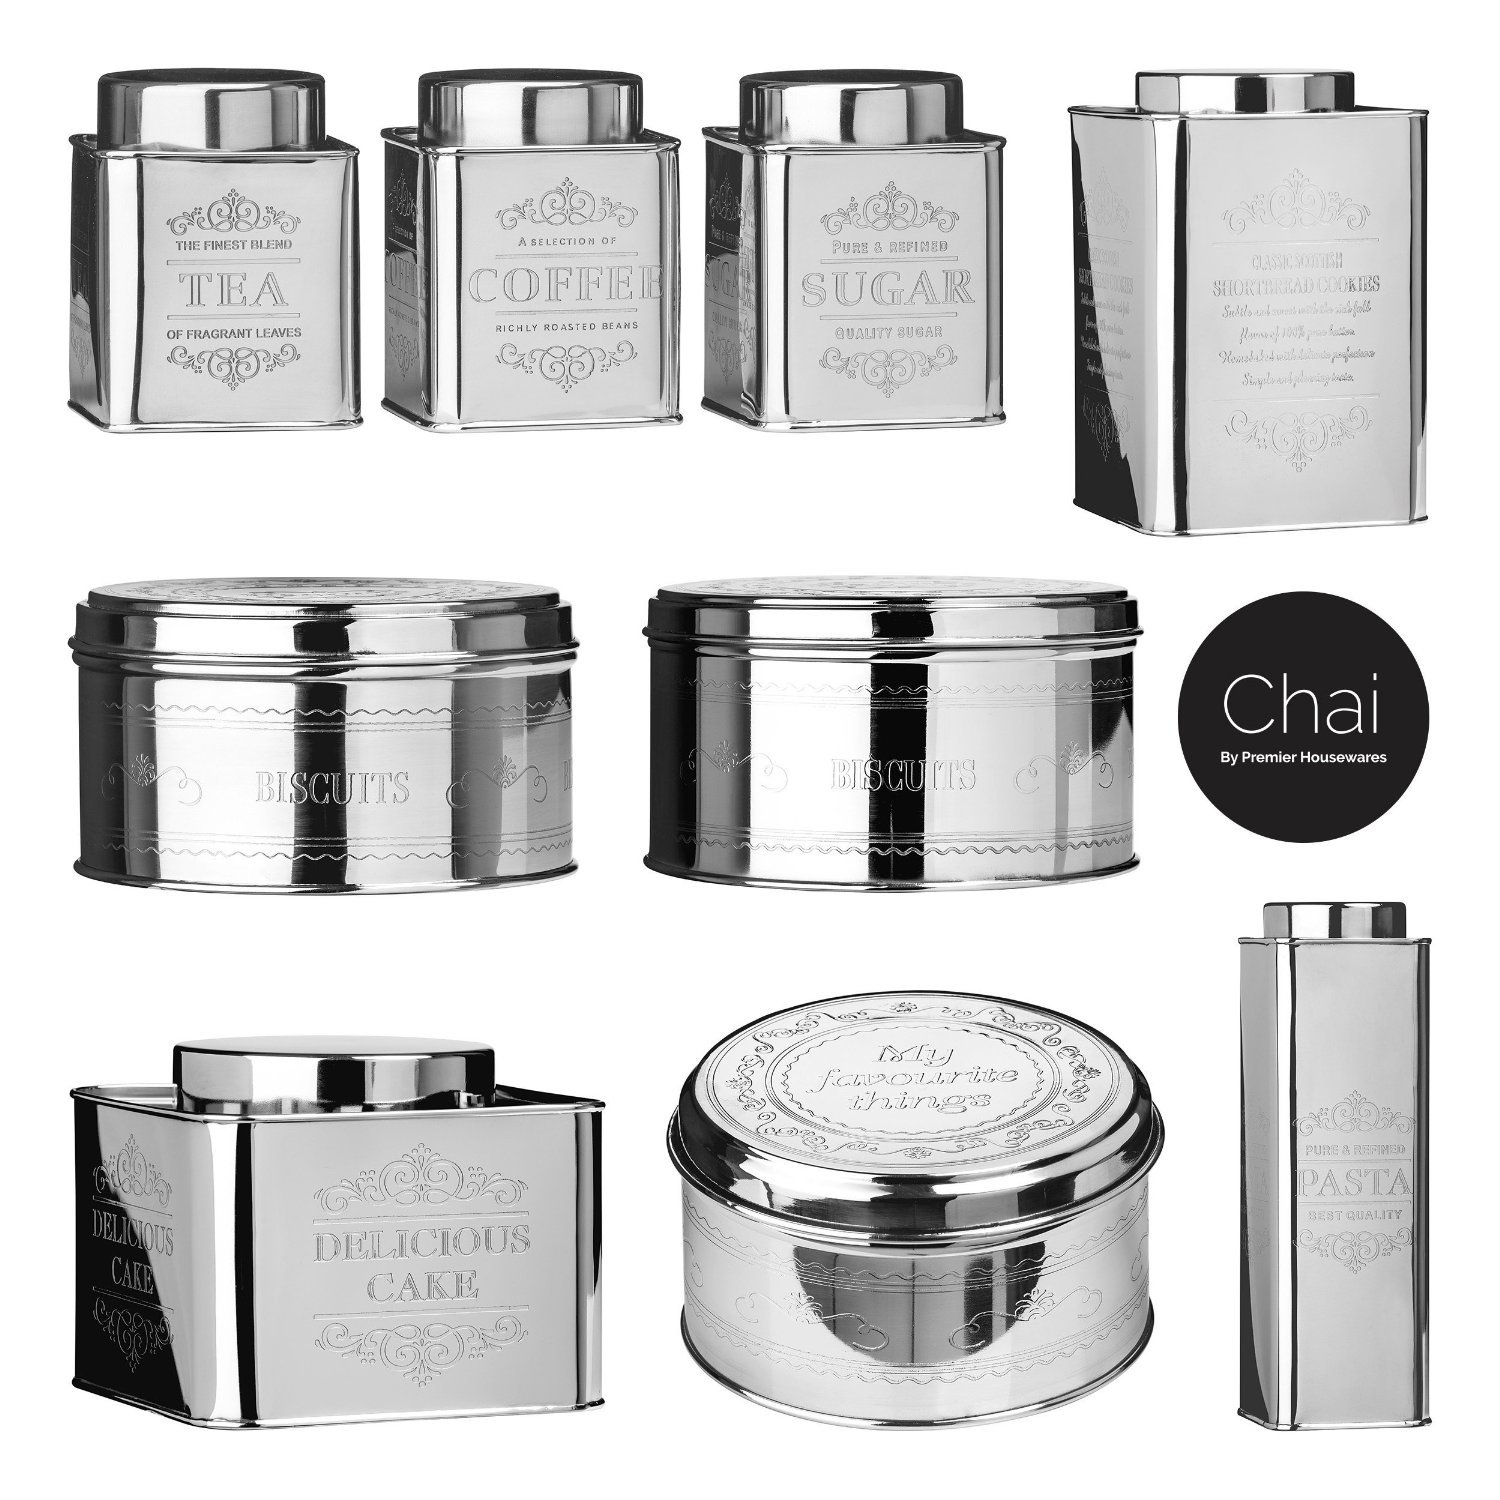 Premier Housewares New Stainless Steel Chai Pasta Canister ultimatesalestore